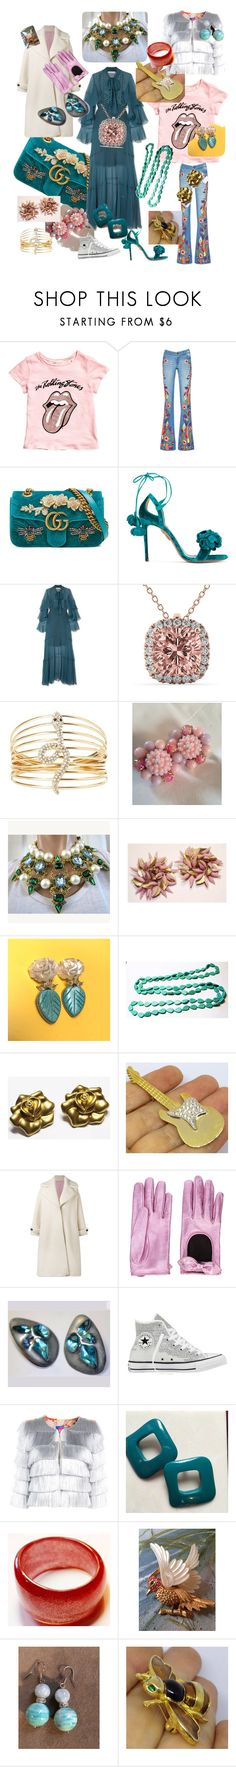 """""""Downtown Girl"""" by mysoulrepair ❤ liked on Polyvore featuring Alice + Olivia, Gucci, Aquazzura, Allurez, Charlotte Russe, Avon, Olympia Le-Tan, Converse and vintage"""